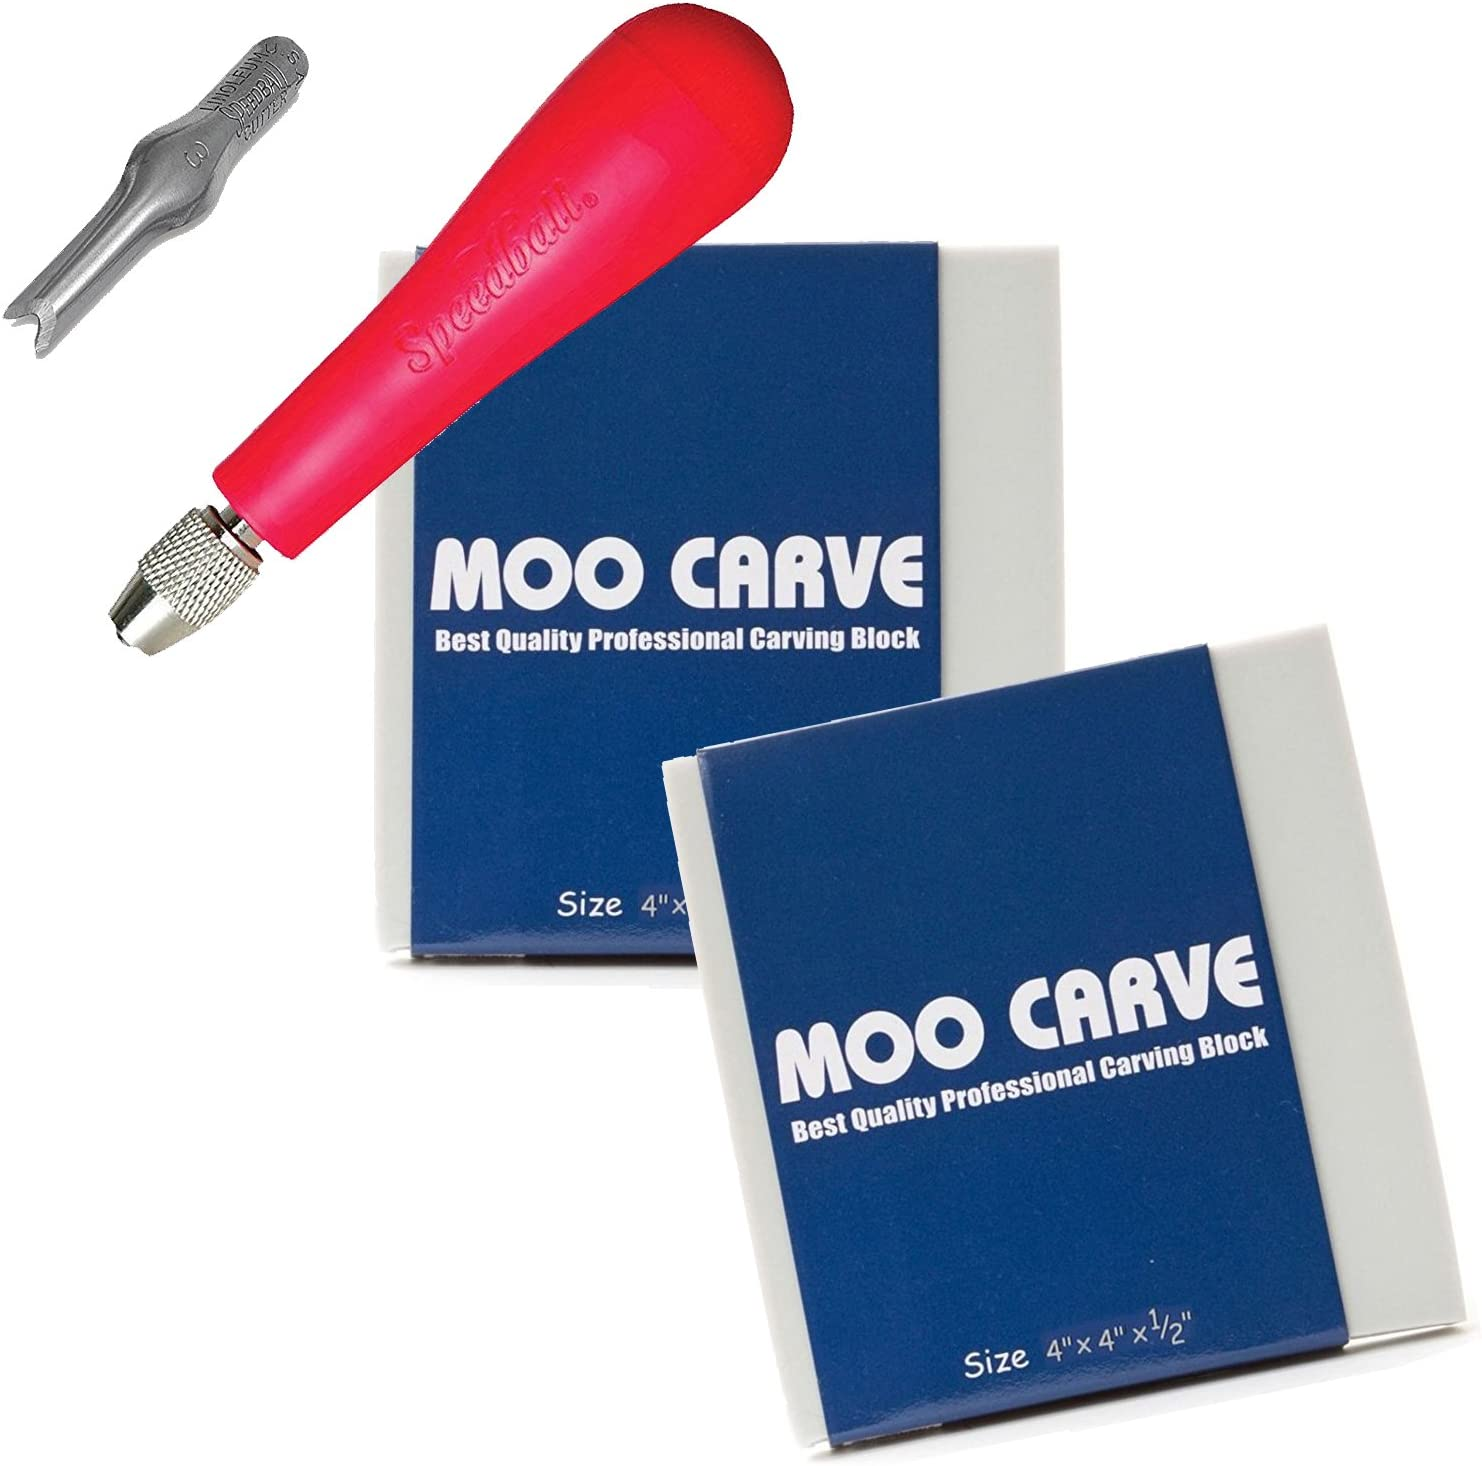 Moo Carving Printing Studio Pack of Easy to Cut Soft Blocks with Speedball Linoleum Cutting Tool /& Blade Artist Printmaking art and tool set 2 Pack 4x4x1//2